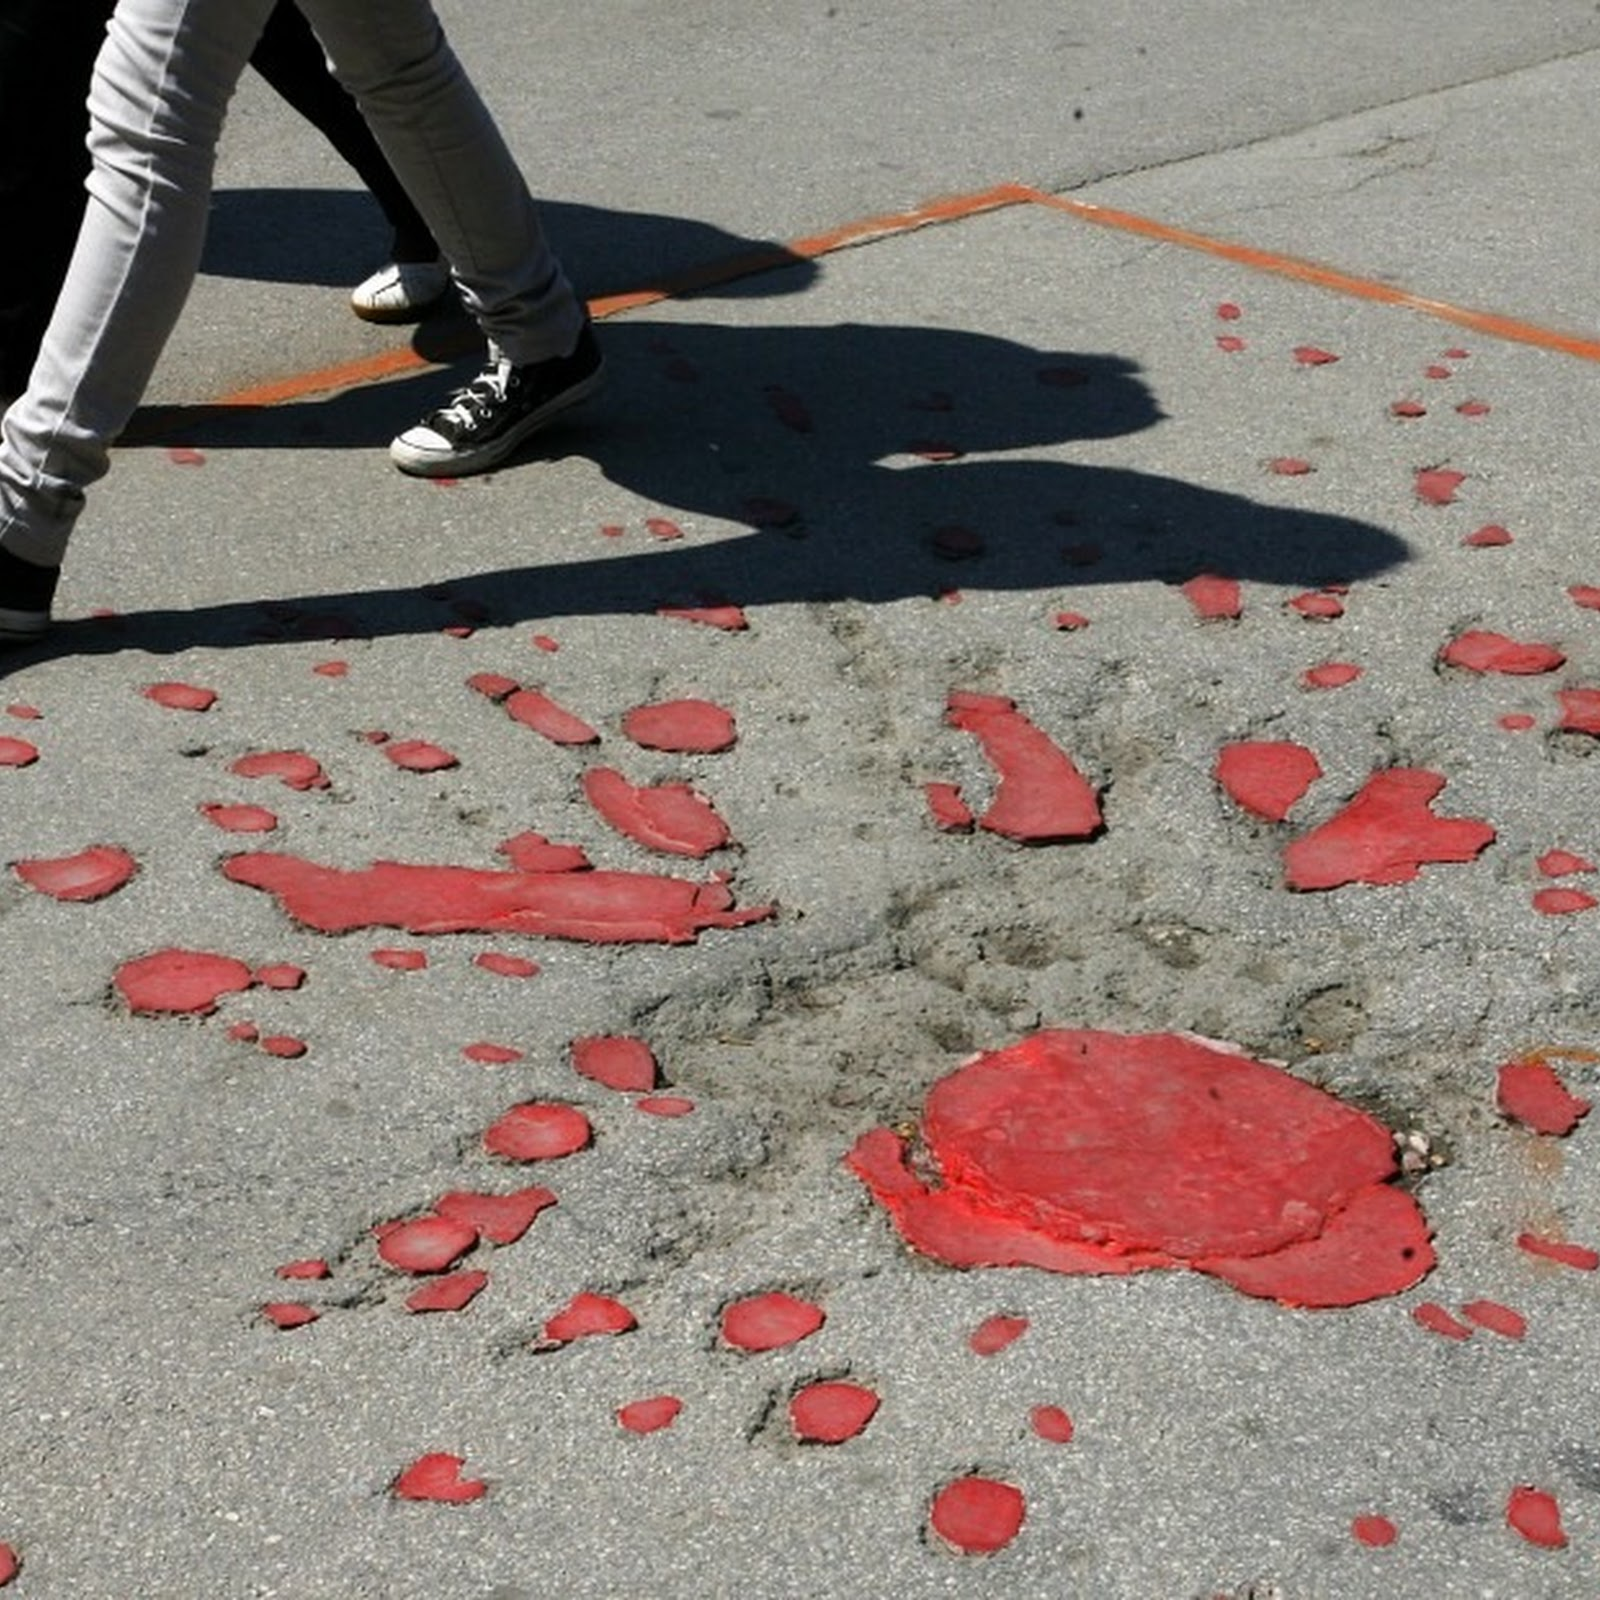 Sarajevo Roses: Mortar Scars Filled With Red Resin as War Memories